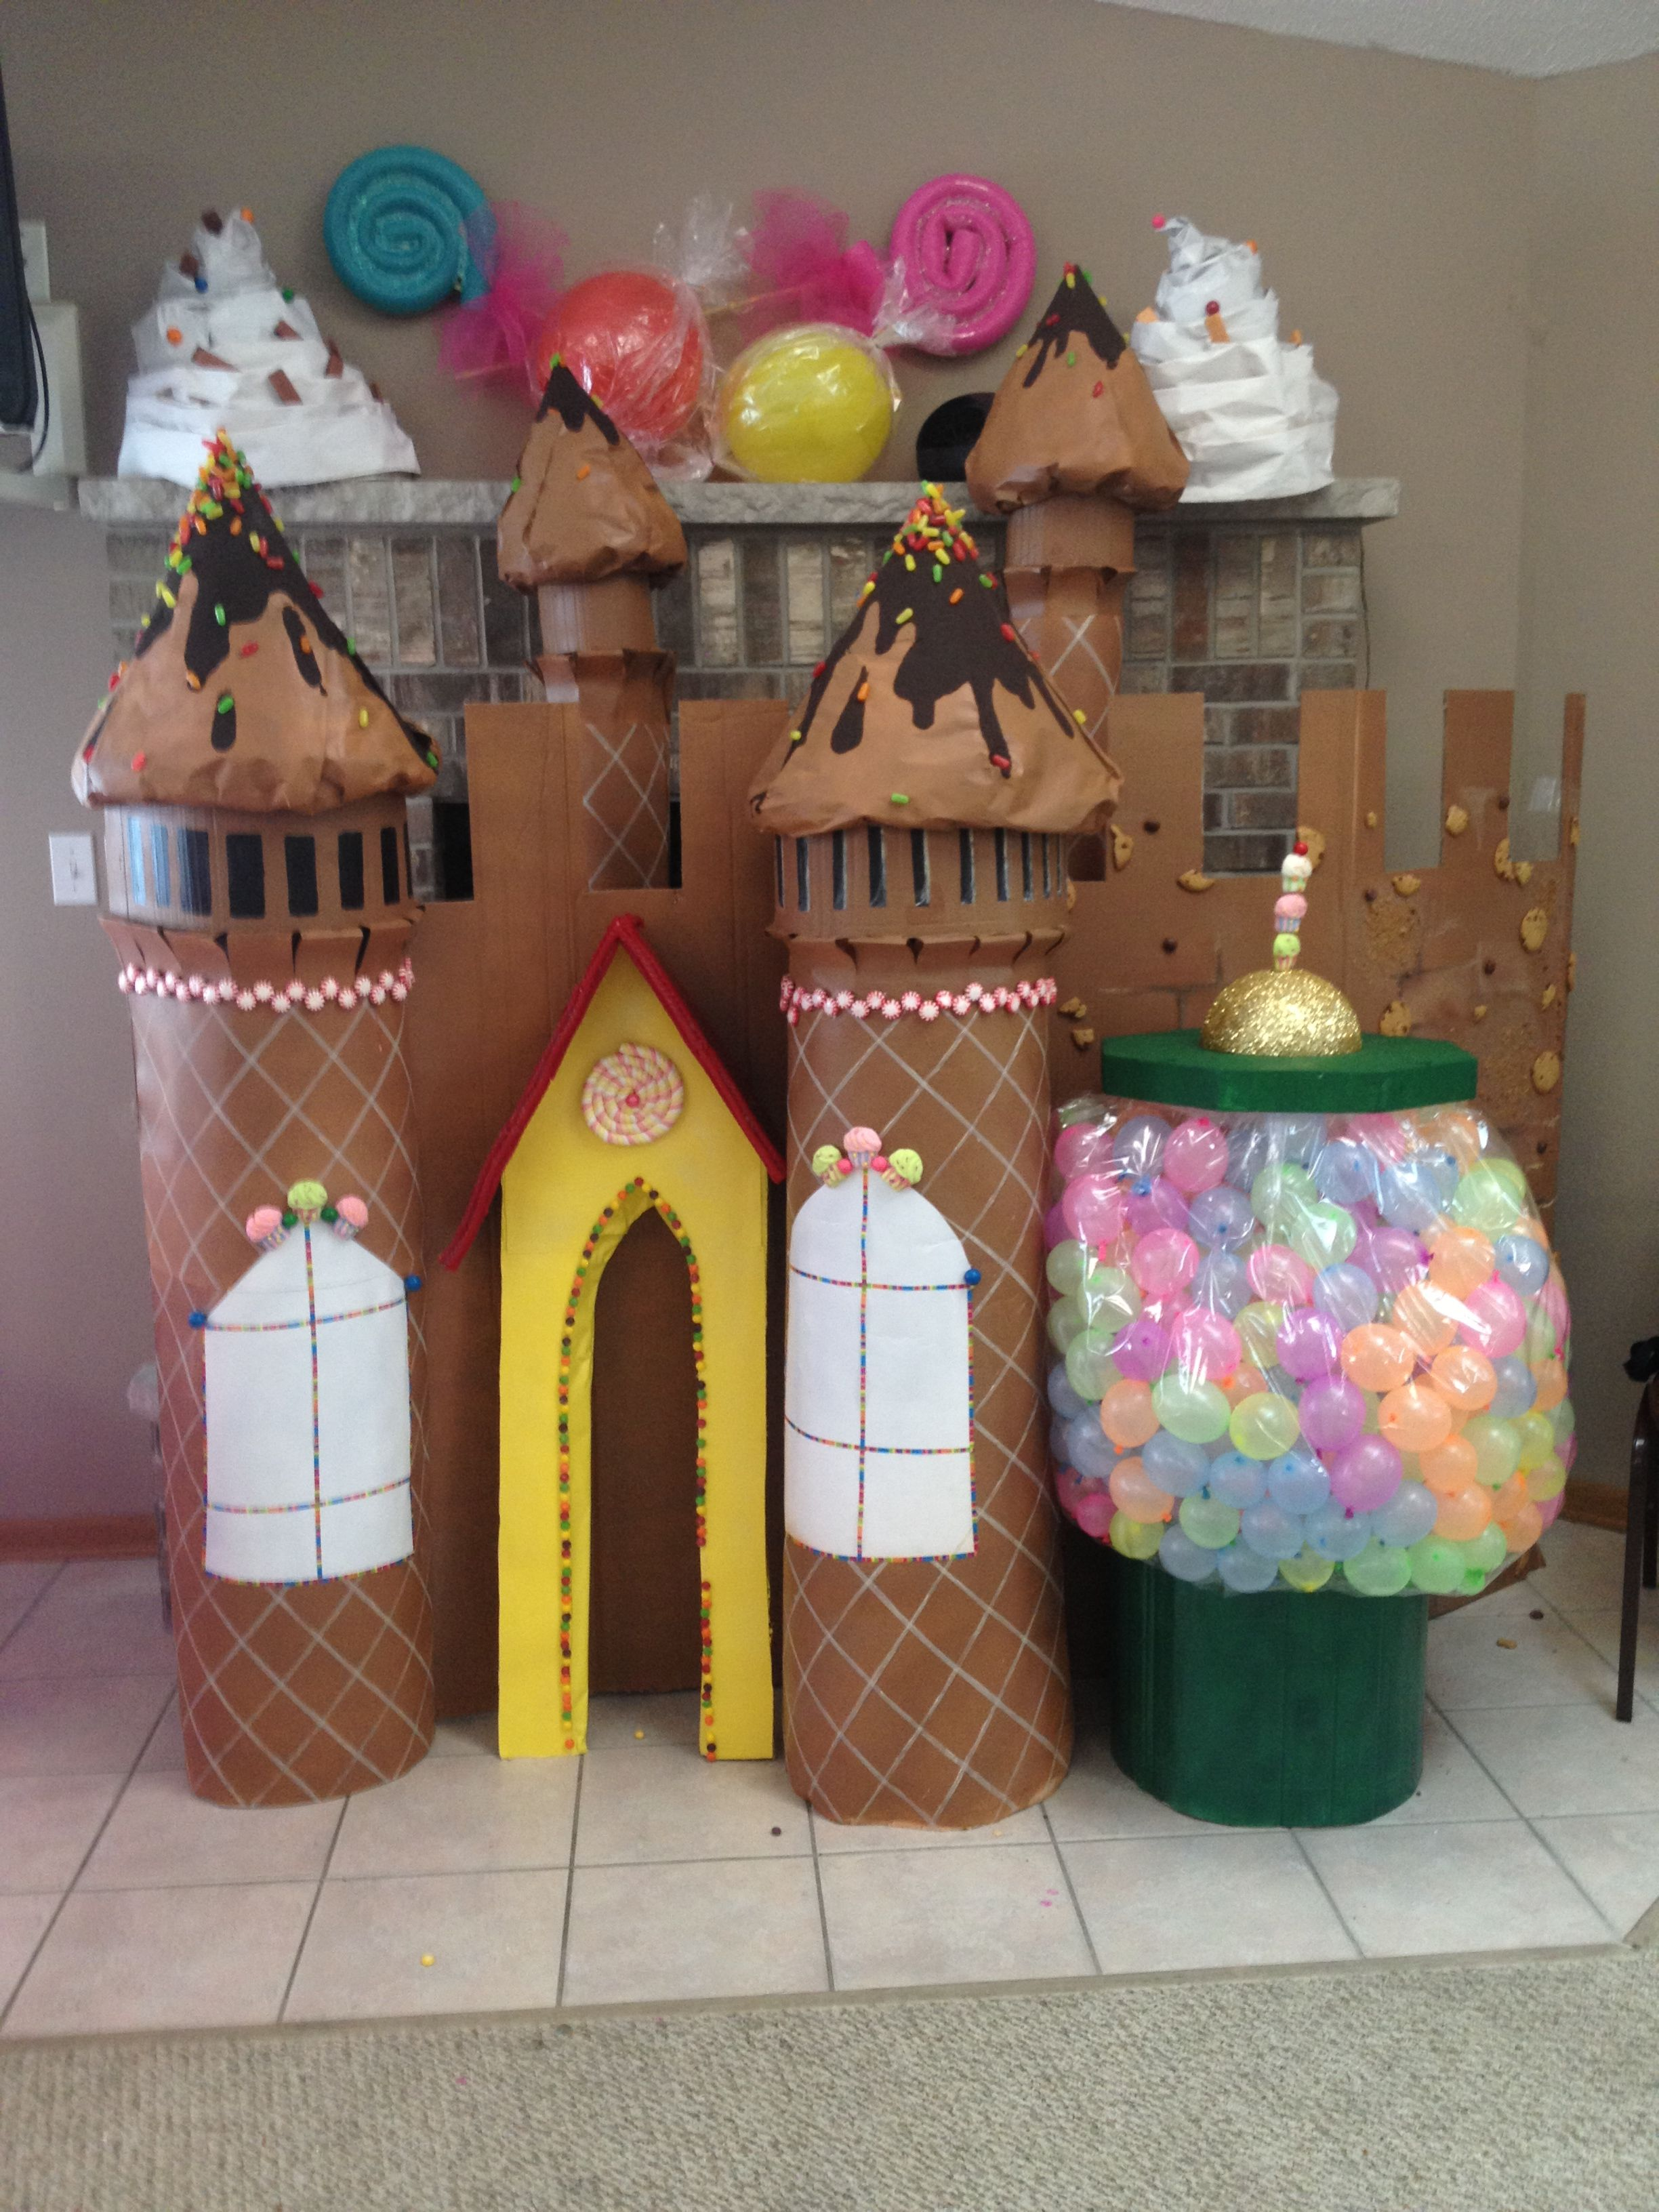 My daughters candyland castle | MY LIFE CAPTURED | Pinterest ...